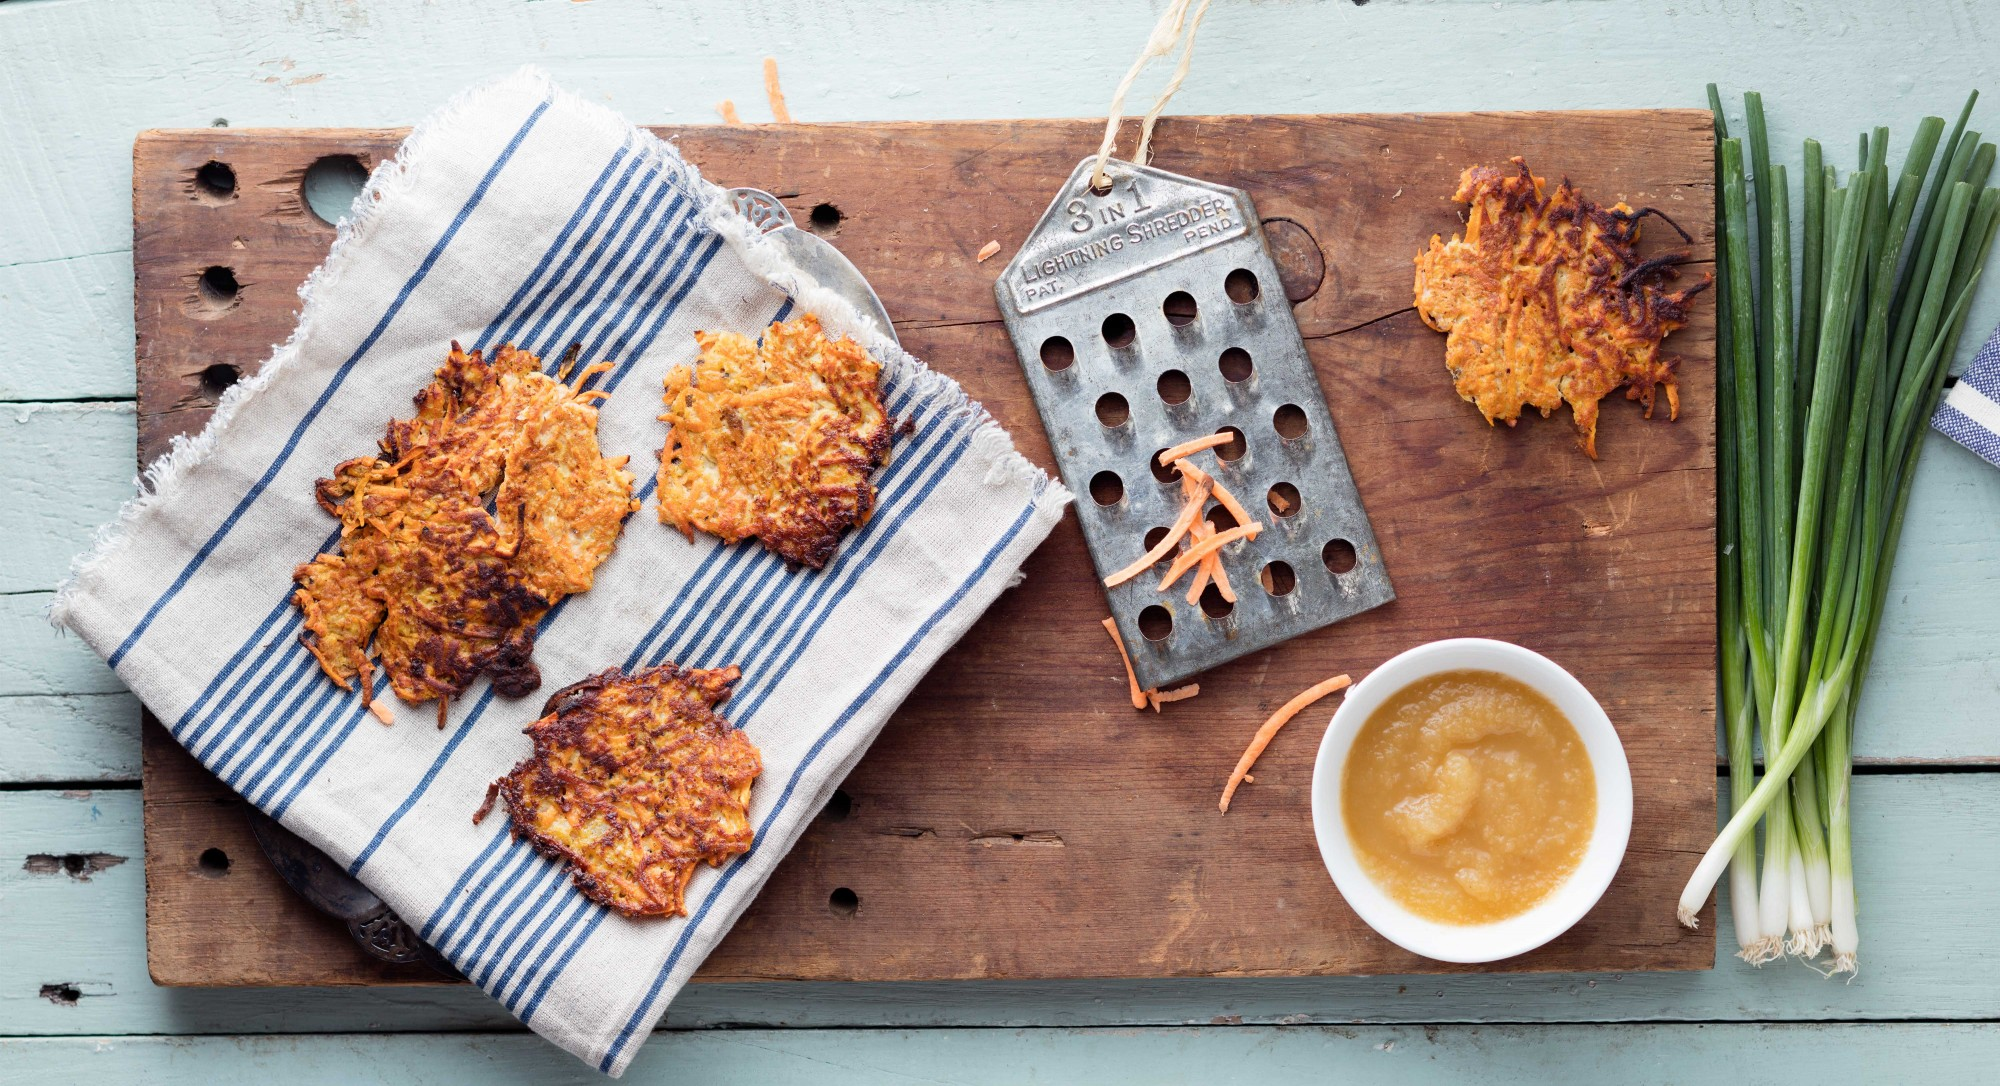 Celebrate Hanukkah the Paleo Way With Sweet Potato Latkes